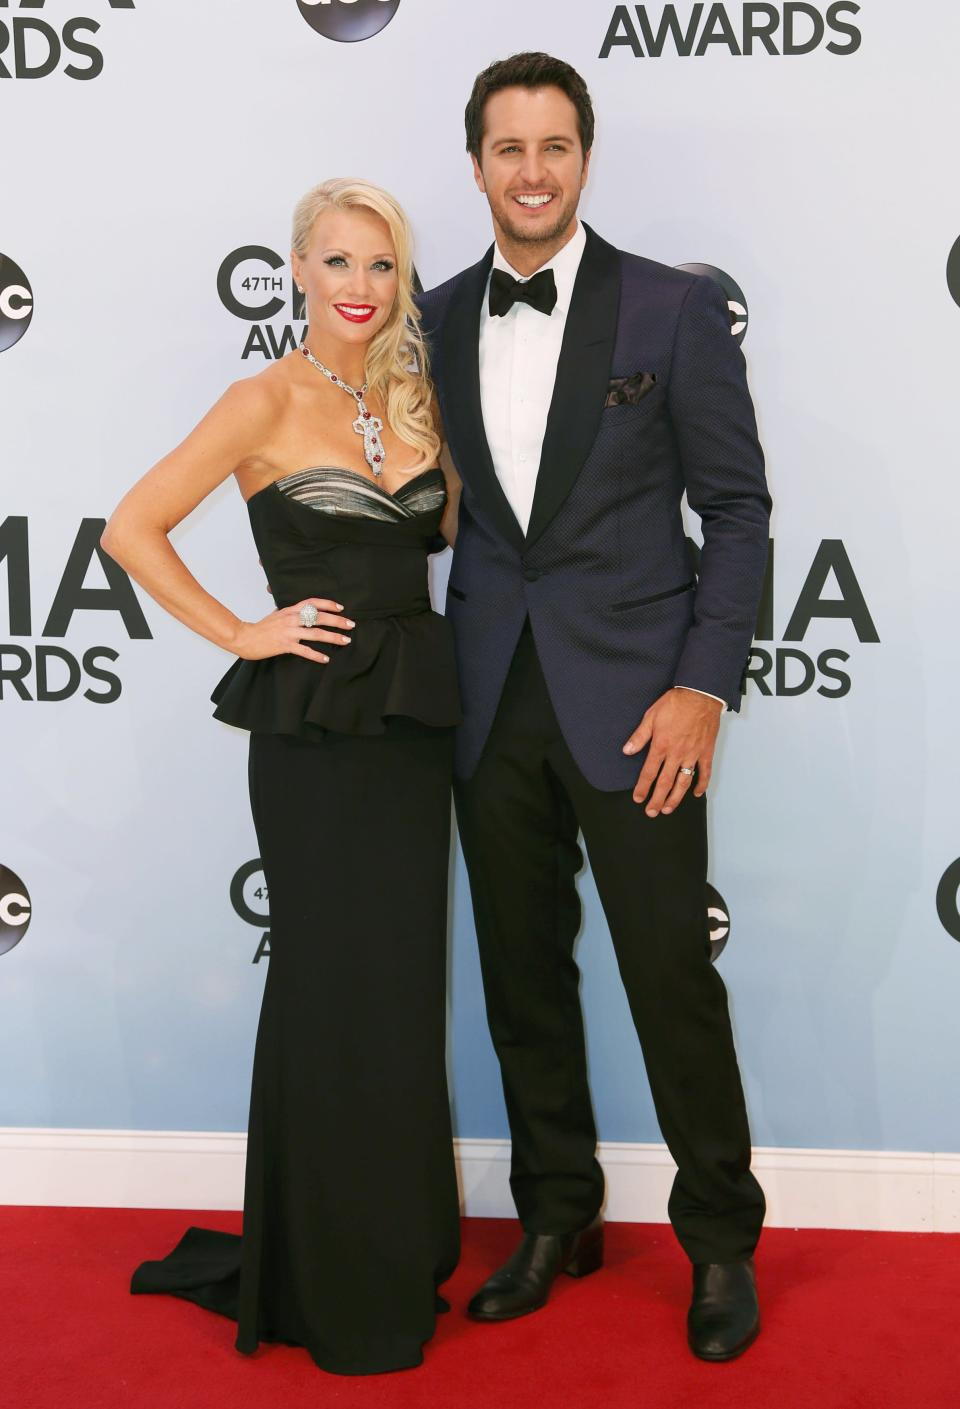 Luke Bryan and his wife Caroline Boyer pose on arrival at the 47th Country Music Association Awards in Nashville, Tennessee November 6, 2013. REUTERS/Eric Henderson (UNITED STATES - Tags: ENTERTAINMENT)